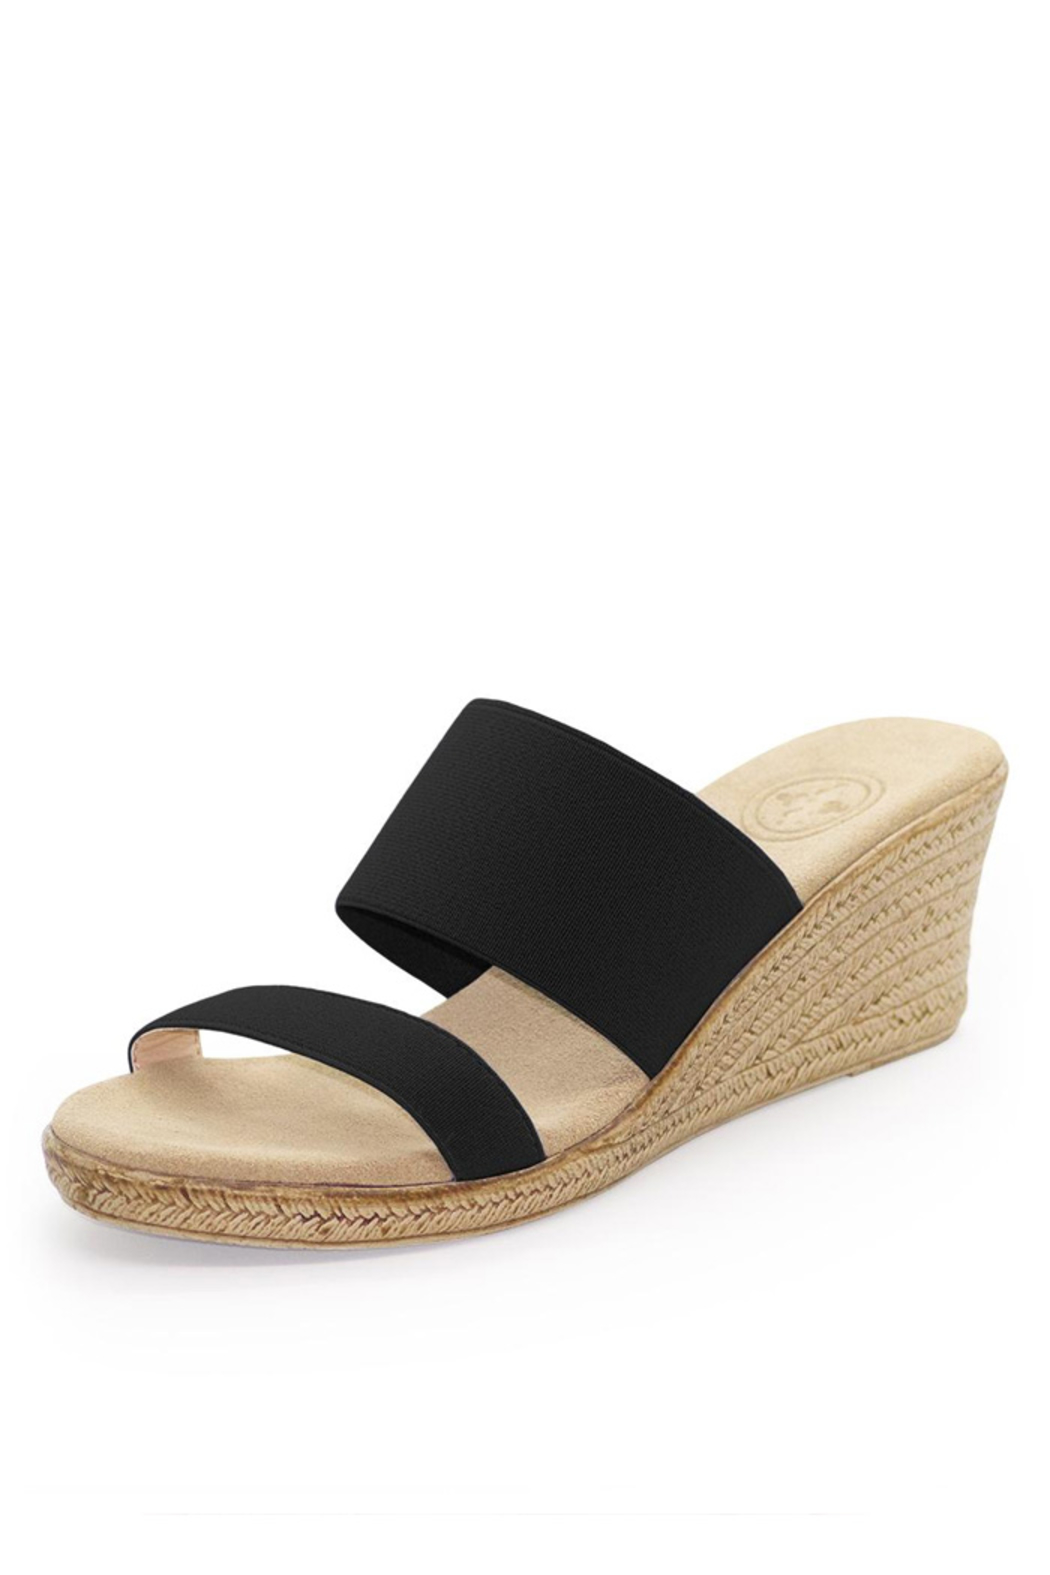 Charleston Shoe Co. BACKLESS COOPER SANDAL - Front Cropped Image